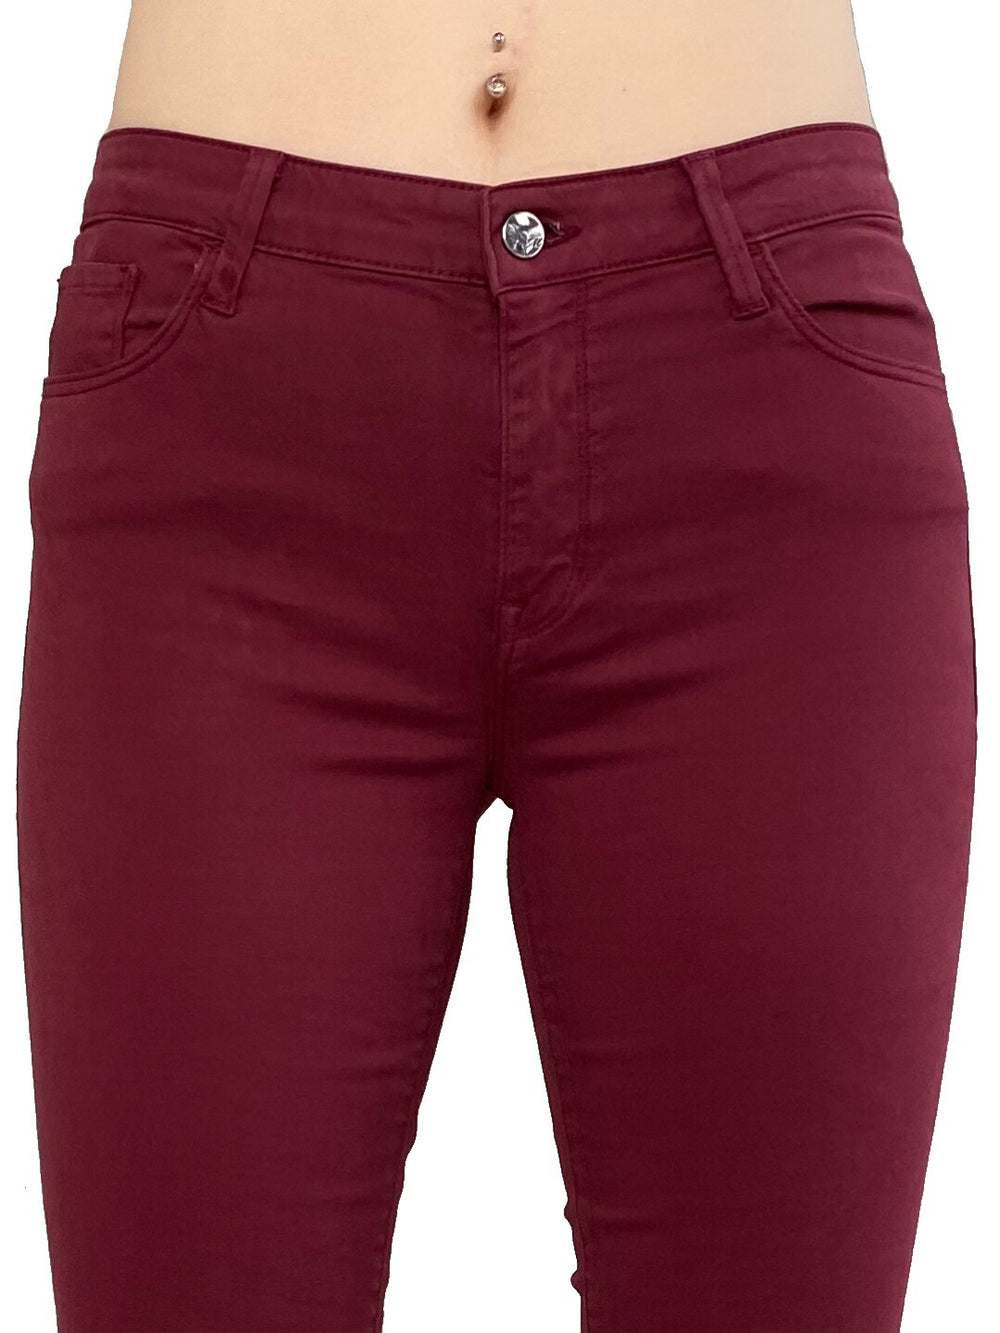 Mavi Alissa - Curvy High Rise Skinny in Bordeaux Twill